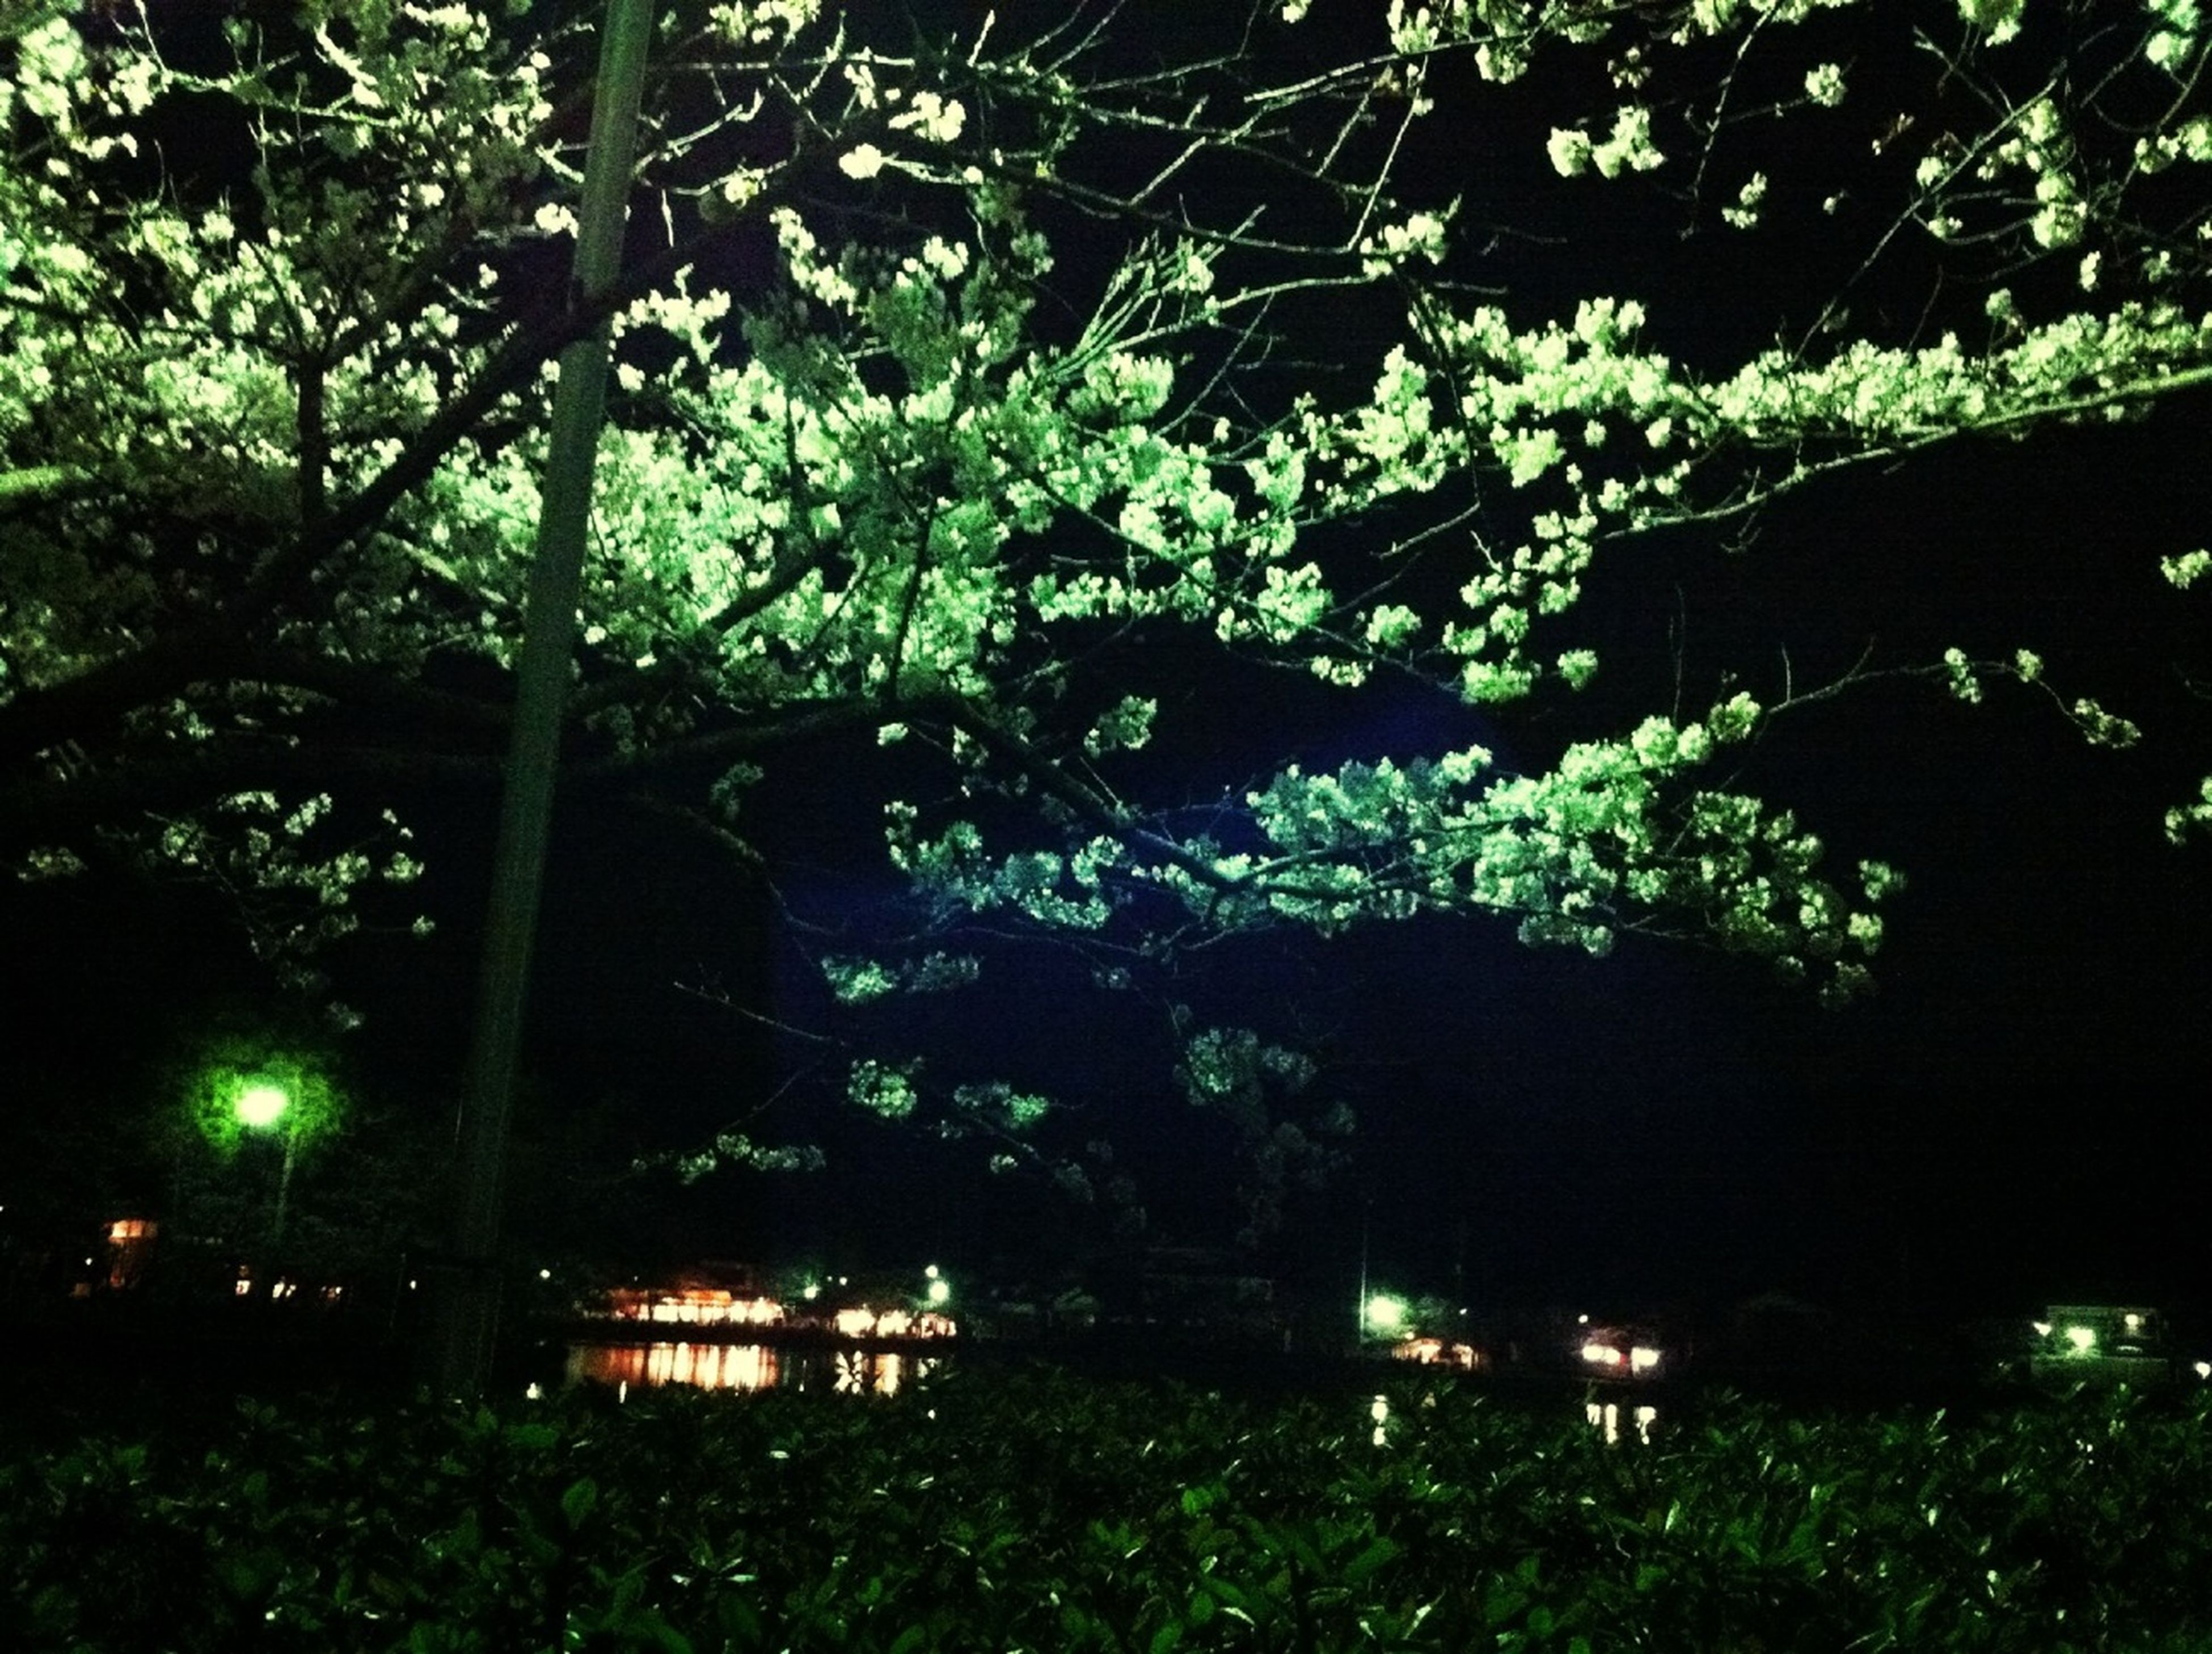 tree, growth, branch, green color, night, nature, tranquility, illuminated, plant, park - man made space, silhouette, outdoors, leaf, beauty in nature, lush foliage, grass, tree trunk, no people, tranquil scene, lighting equipment